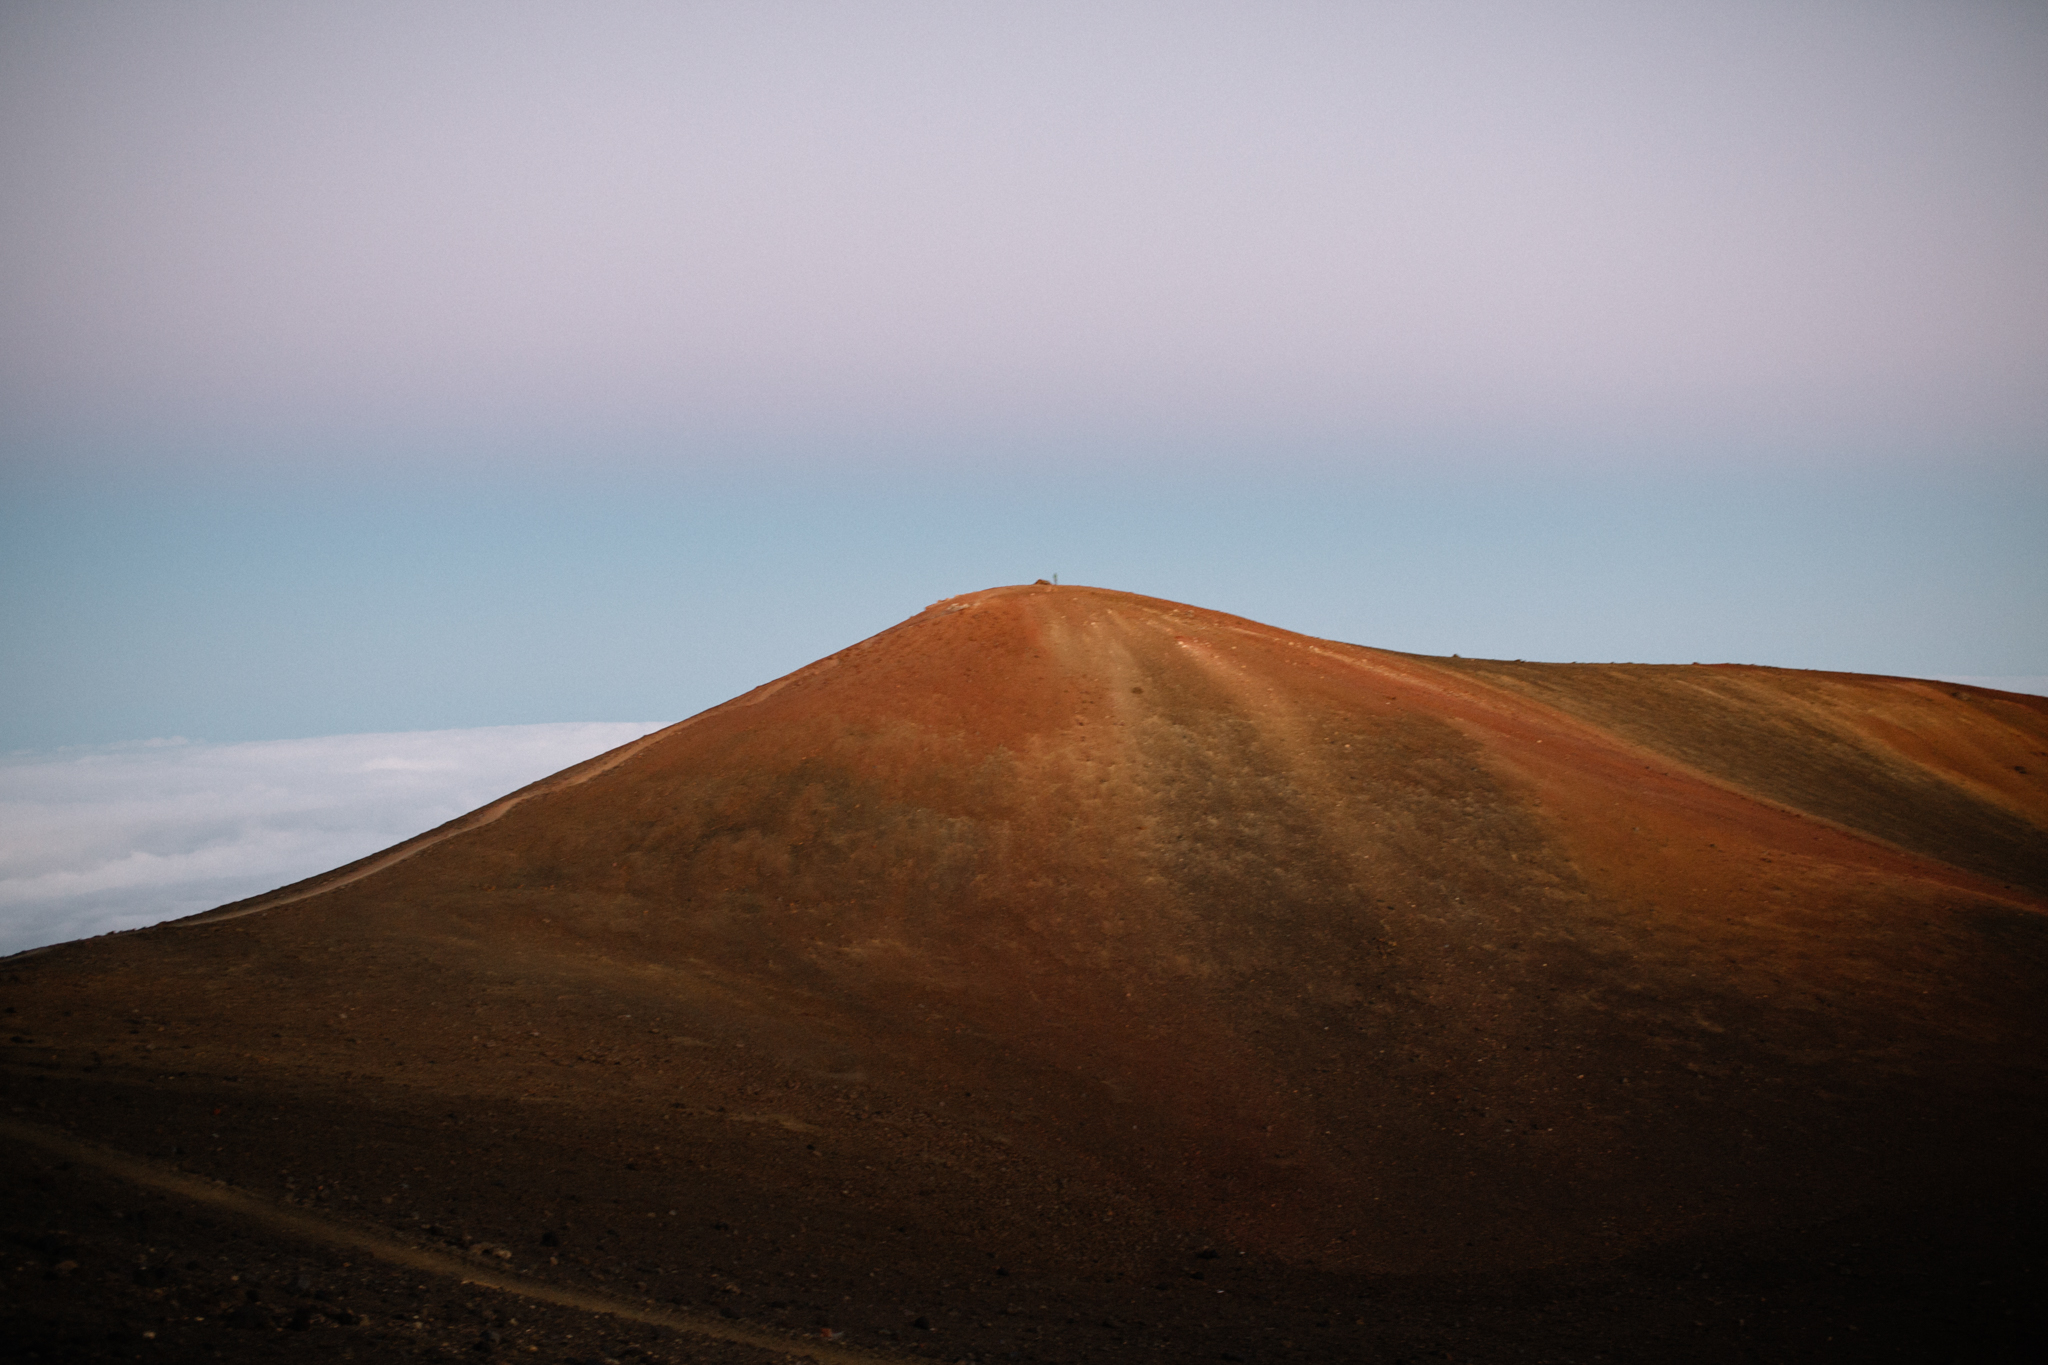 The actual summit, pictured here, is a historic and religiously significant site for native Hawaiians. Hiking to it is forbidden.